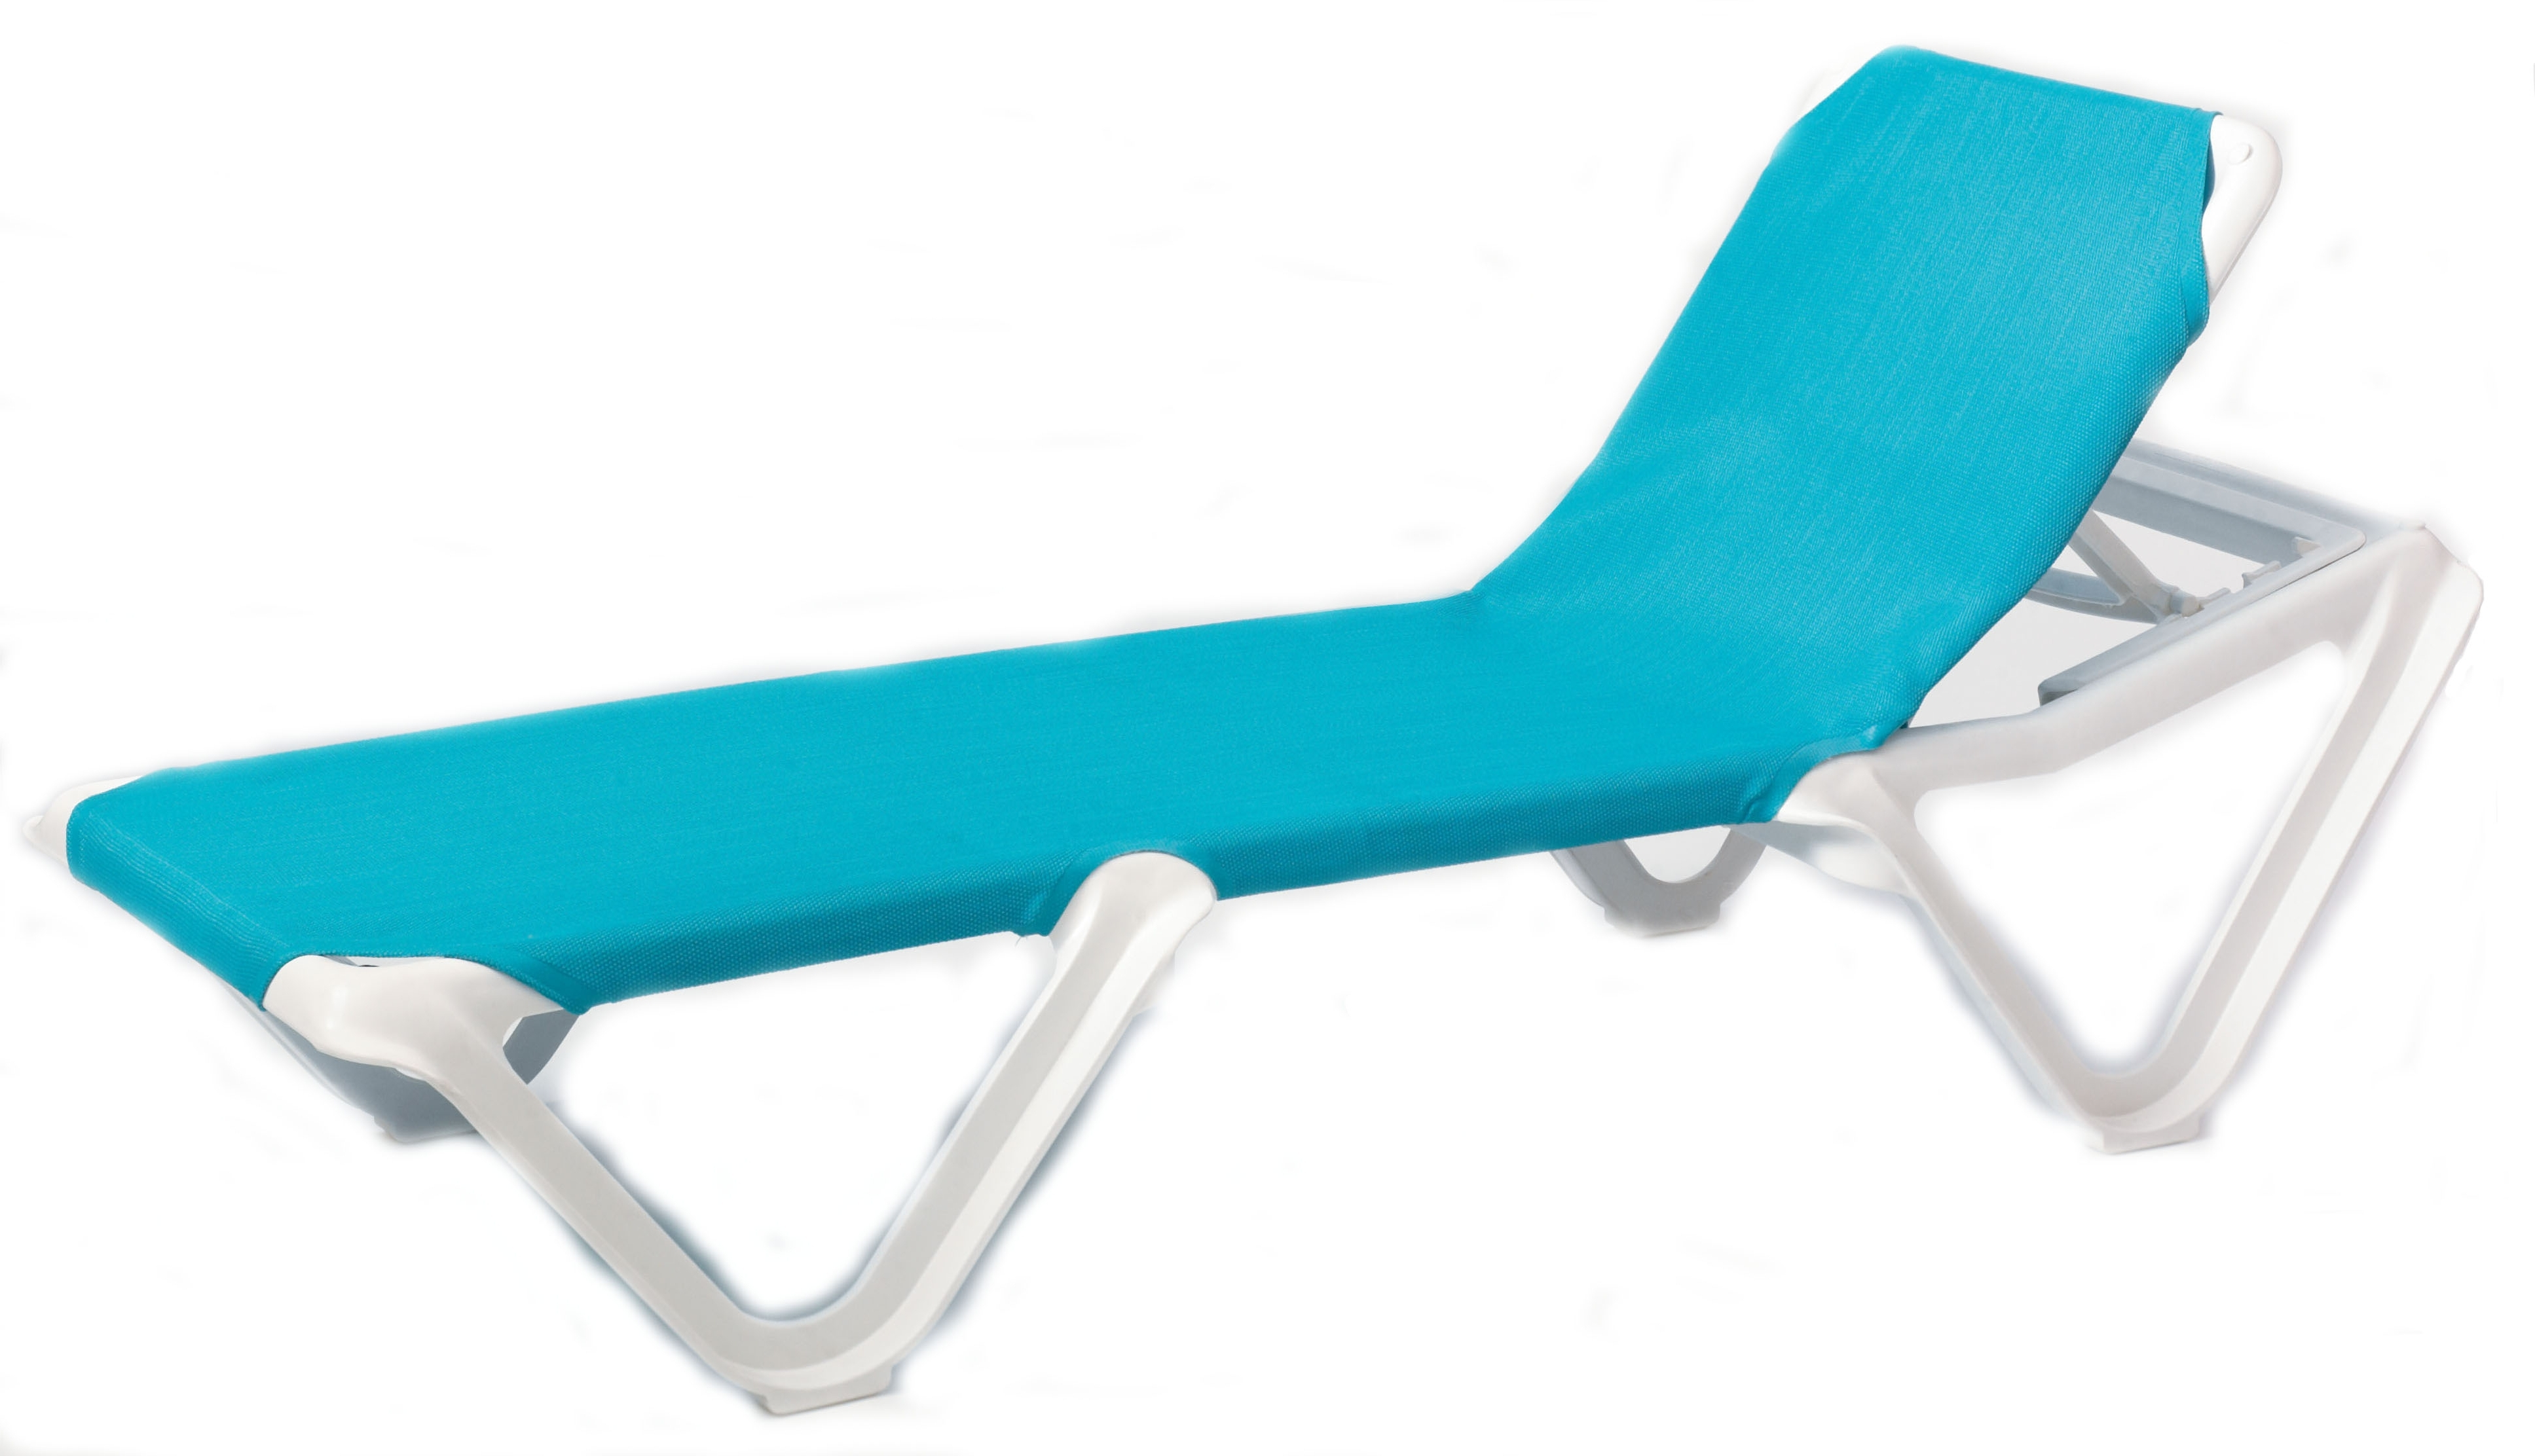 Pool Chaise Lounge Chairs Resin • Lounge Chairs Ideas With Well Liked Grosfillex Chaise Lounge Chairs (View 12 of 15)